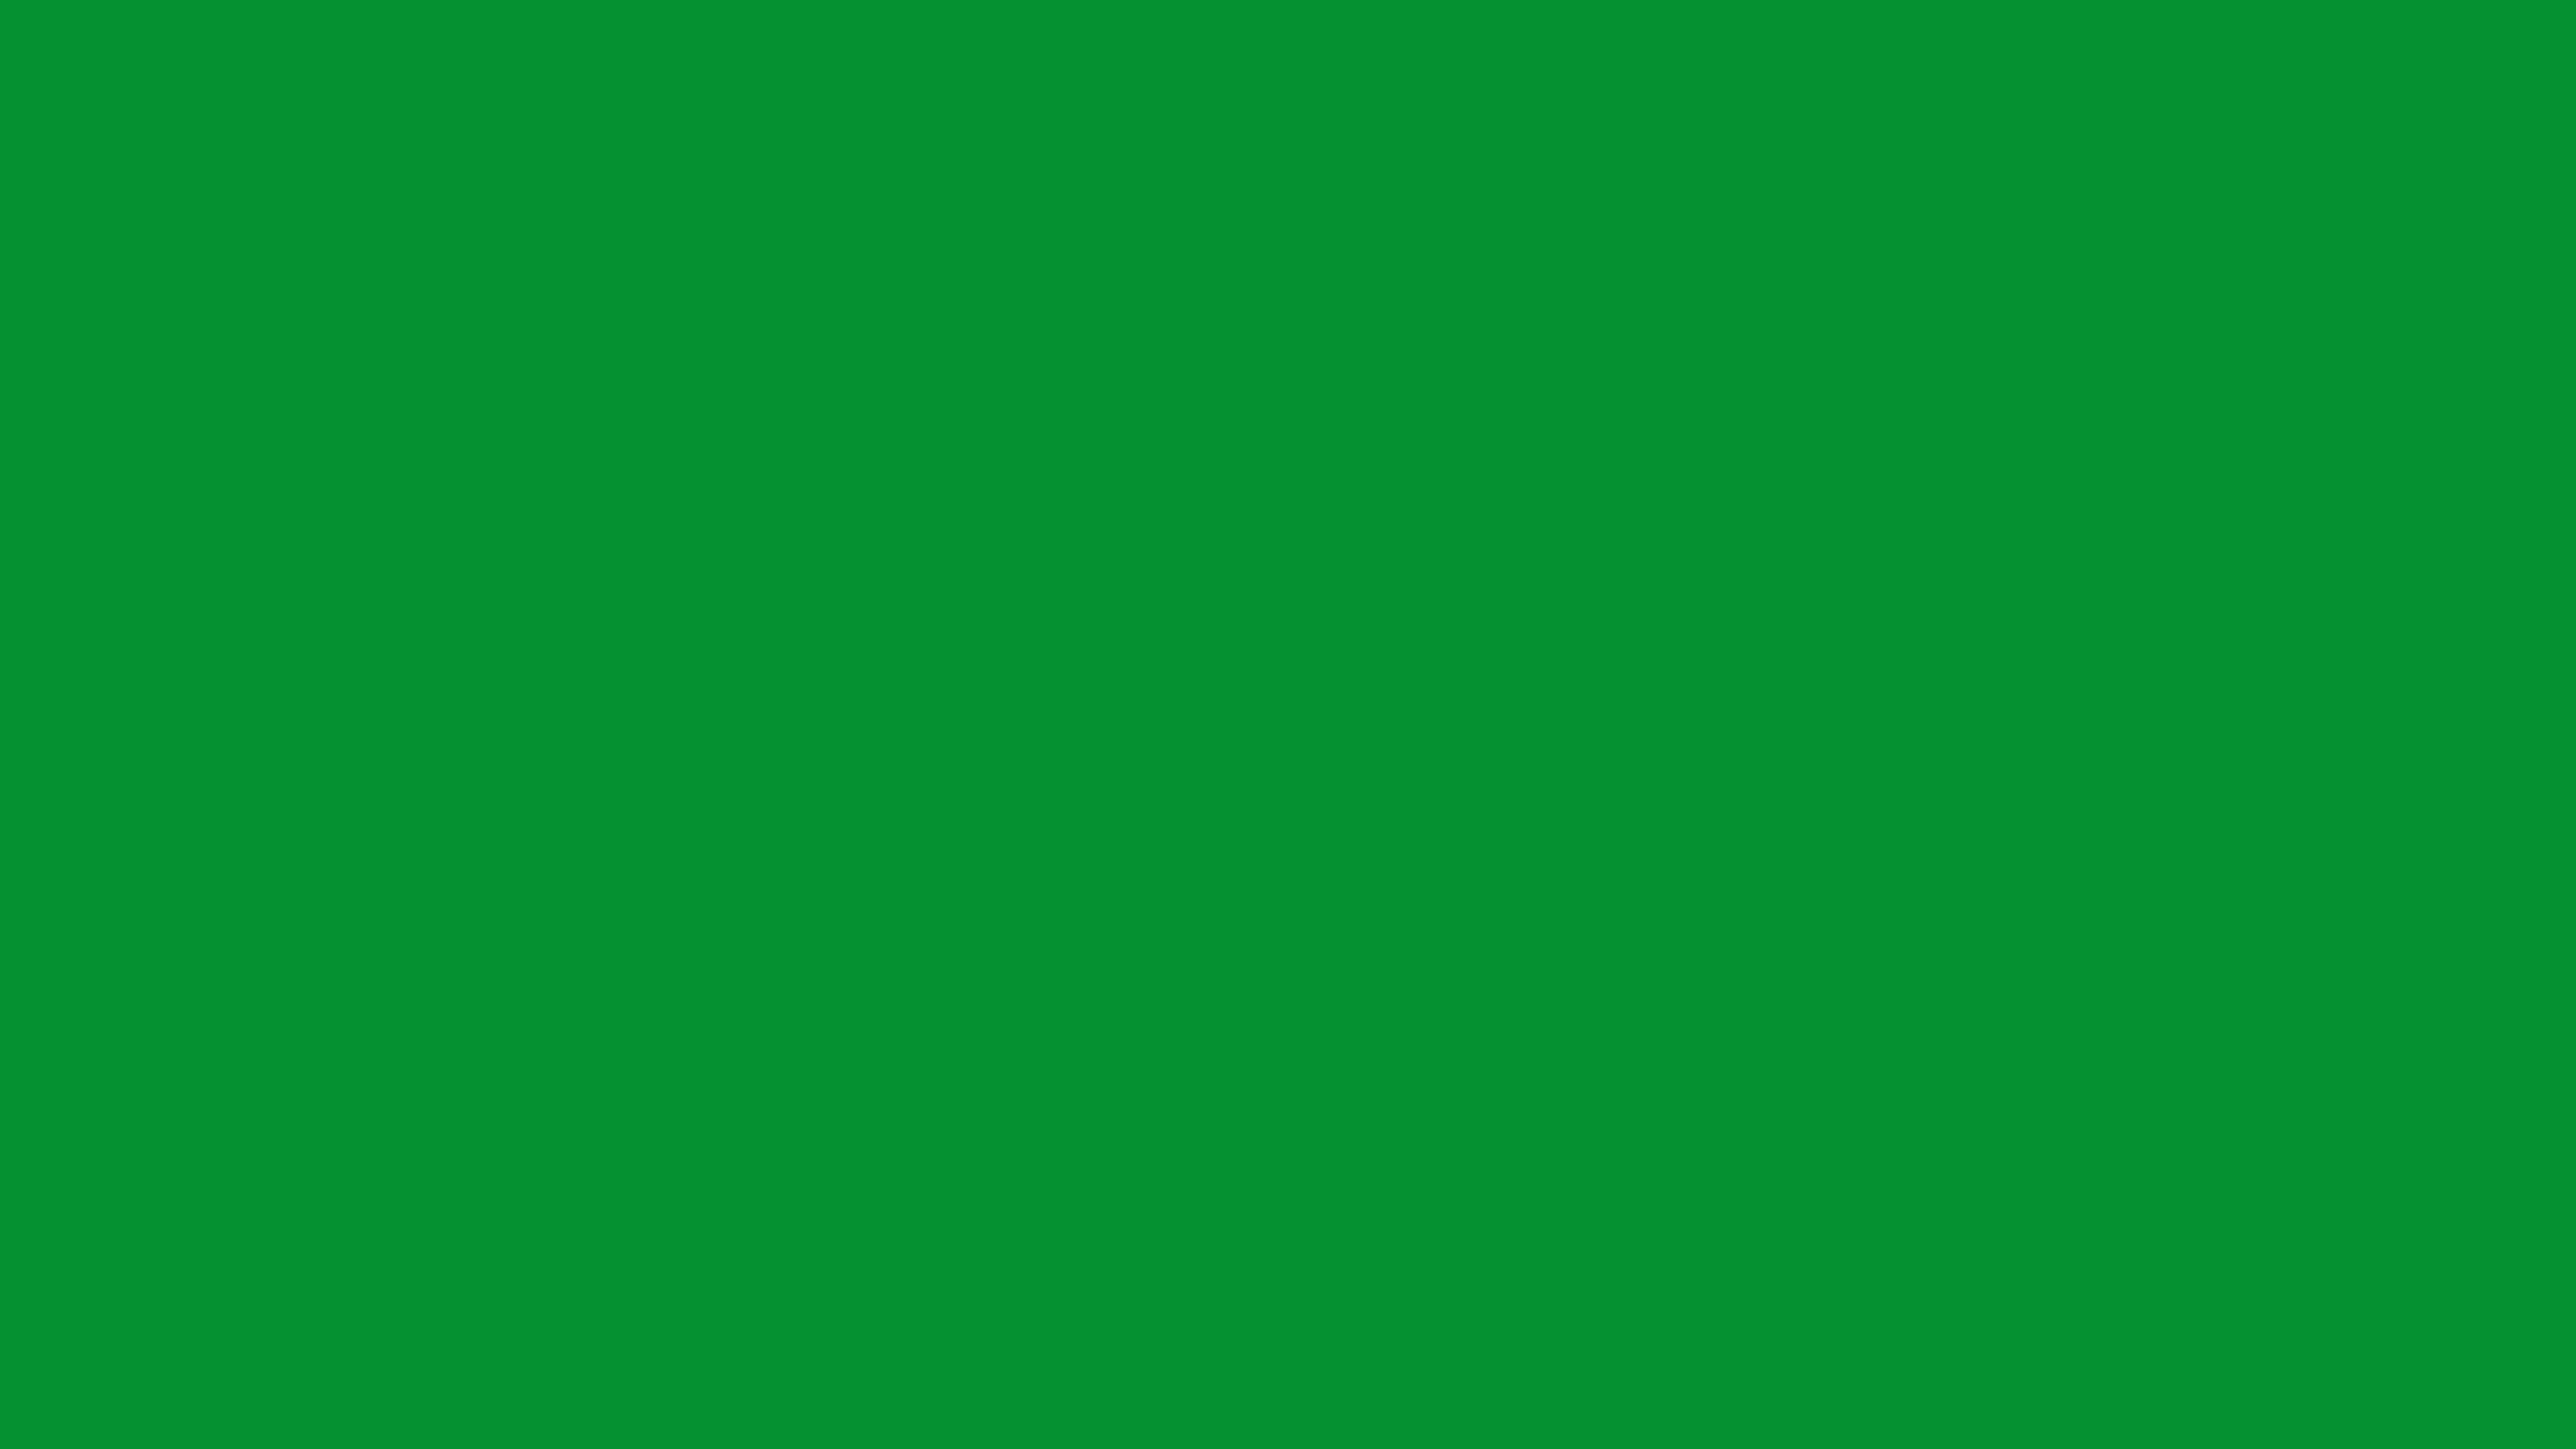 7680x4320 North Texas Green Solid Color Background